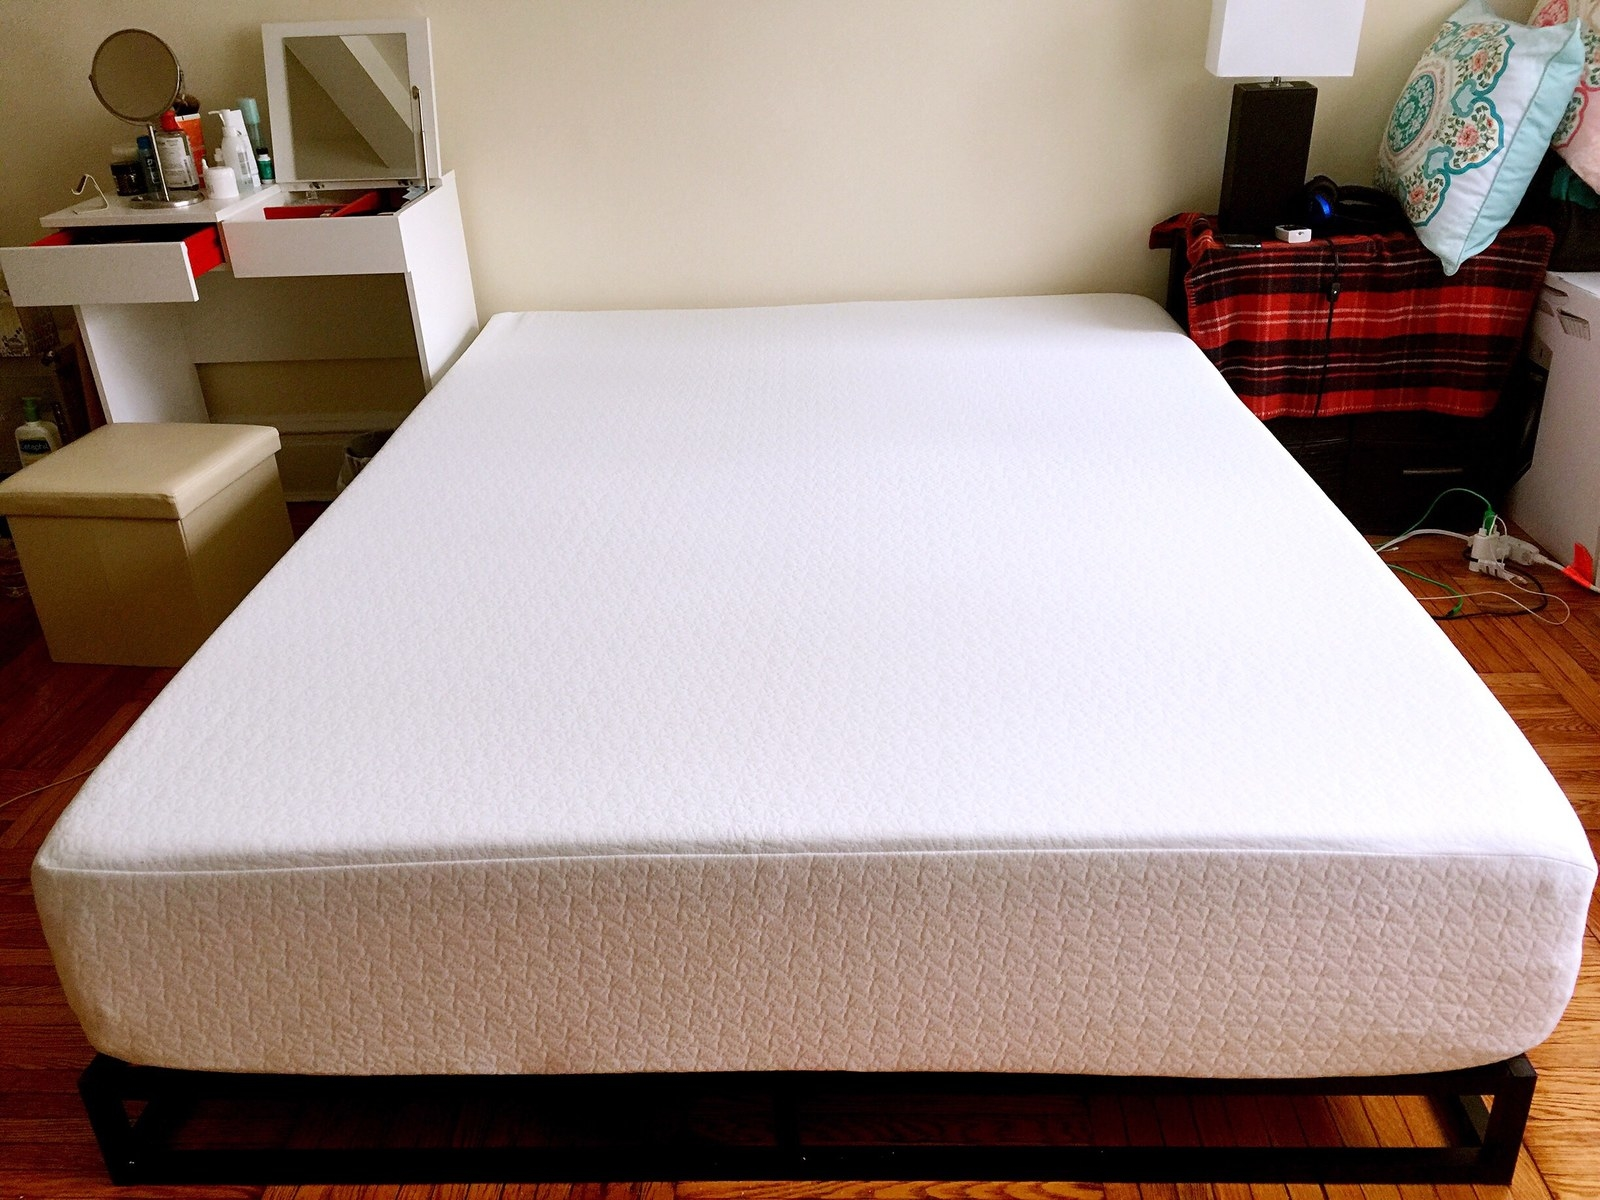 zinus memory foam green tea mattress a reasonably priced mattress that feels really highquality